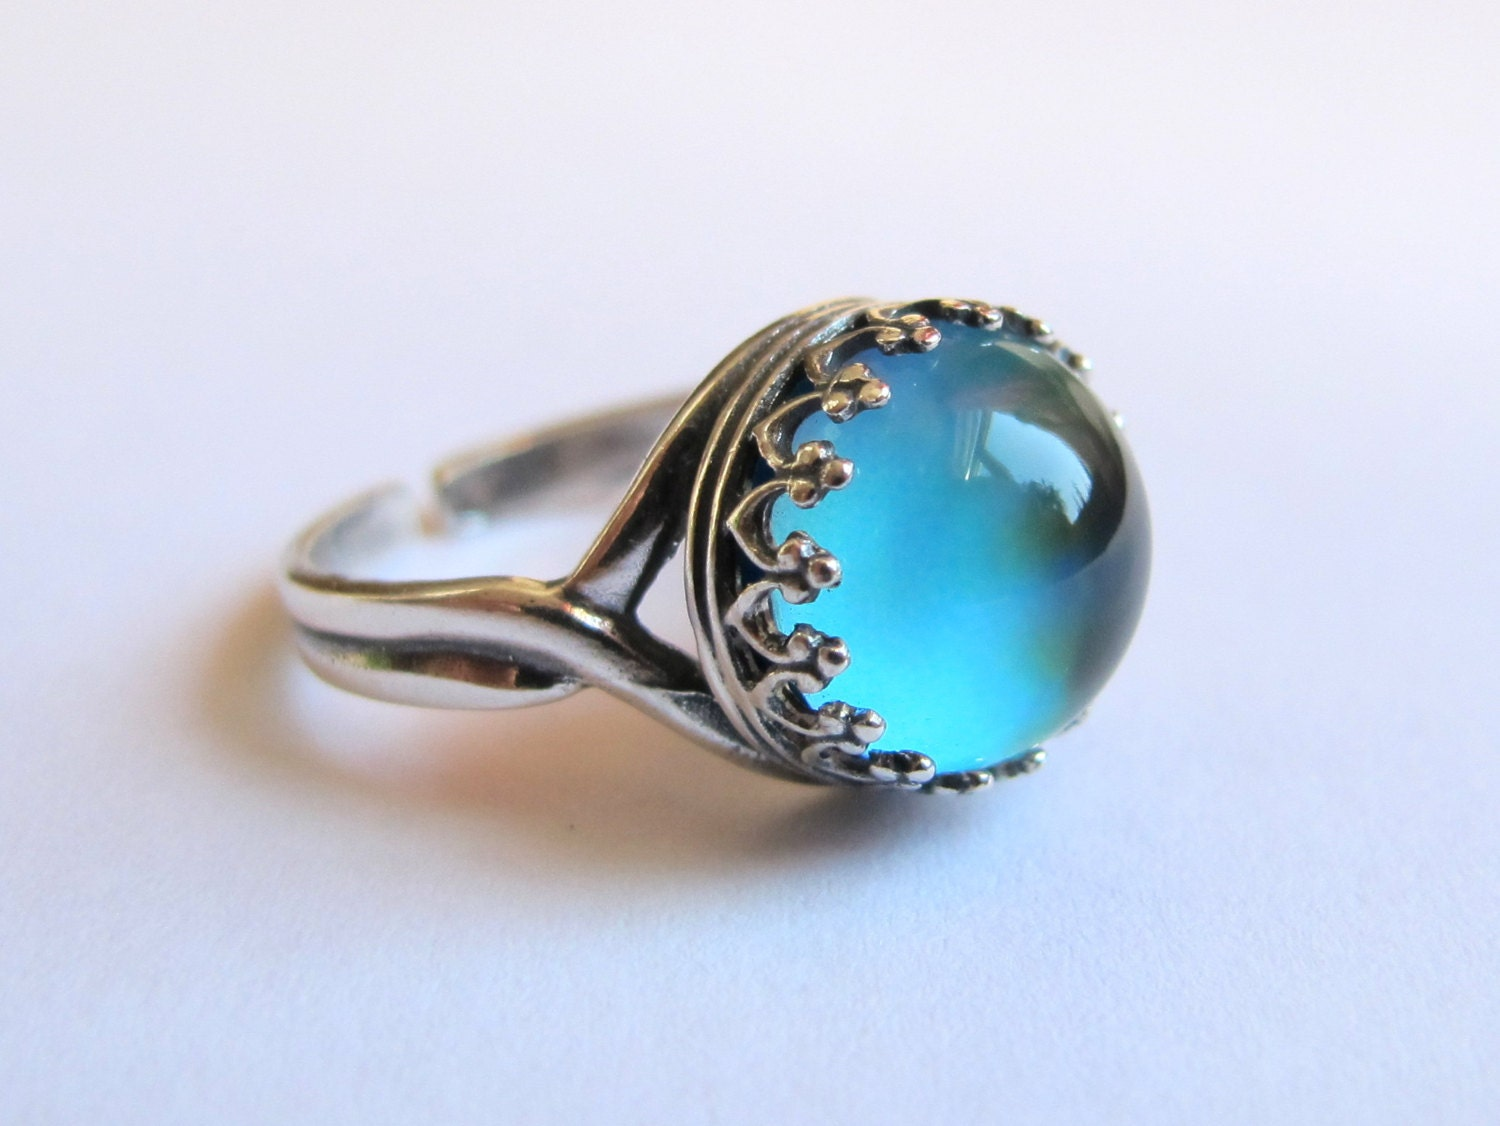 mood ring sterling silver 925 11 mm high quality